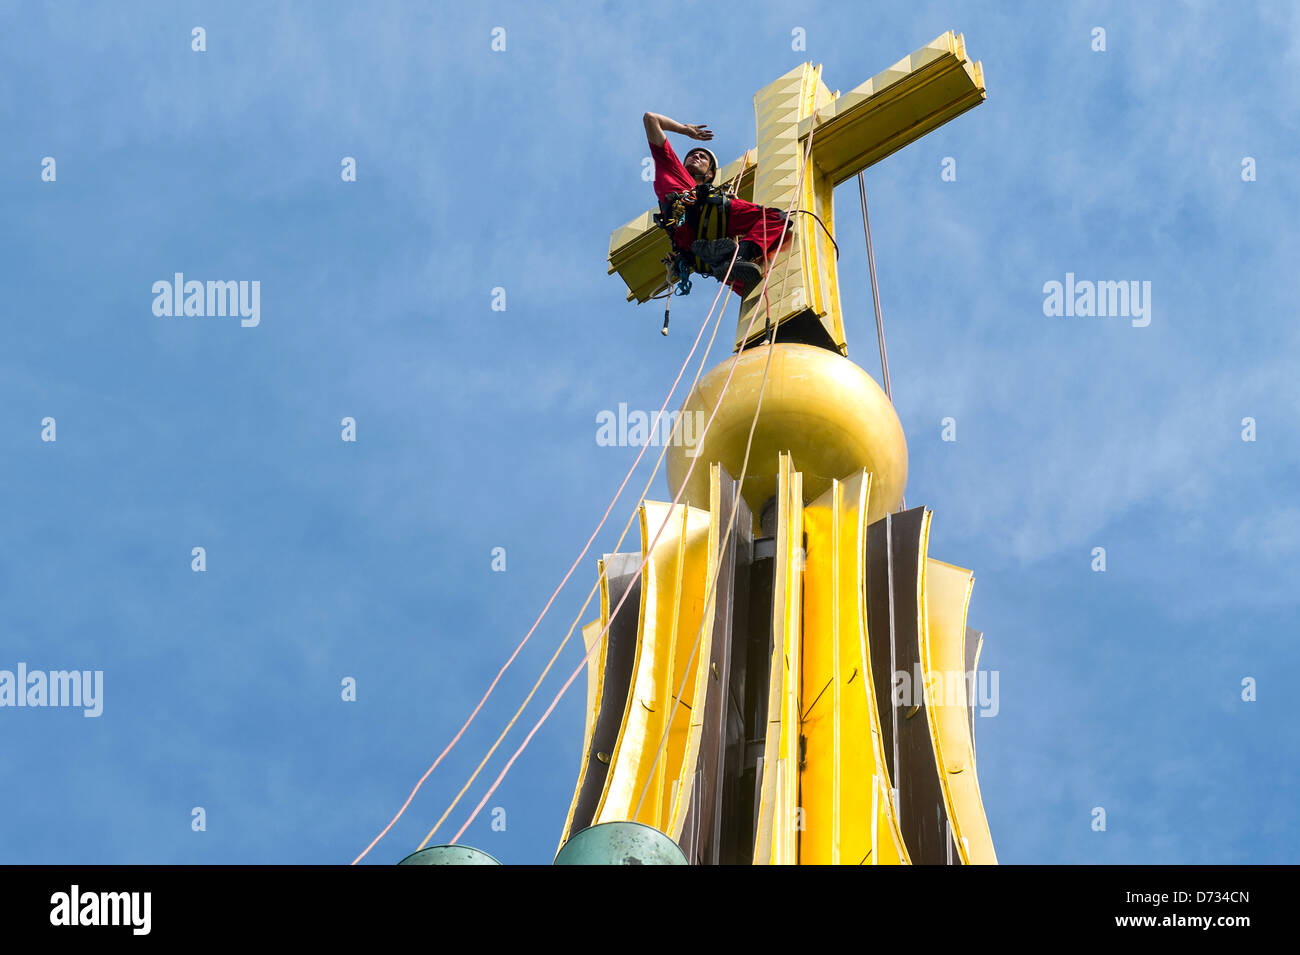 Berlin, Germany, burglar Thomas Michael Cross on dome of the Berlin Cathedral - Stock Image